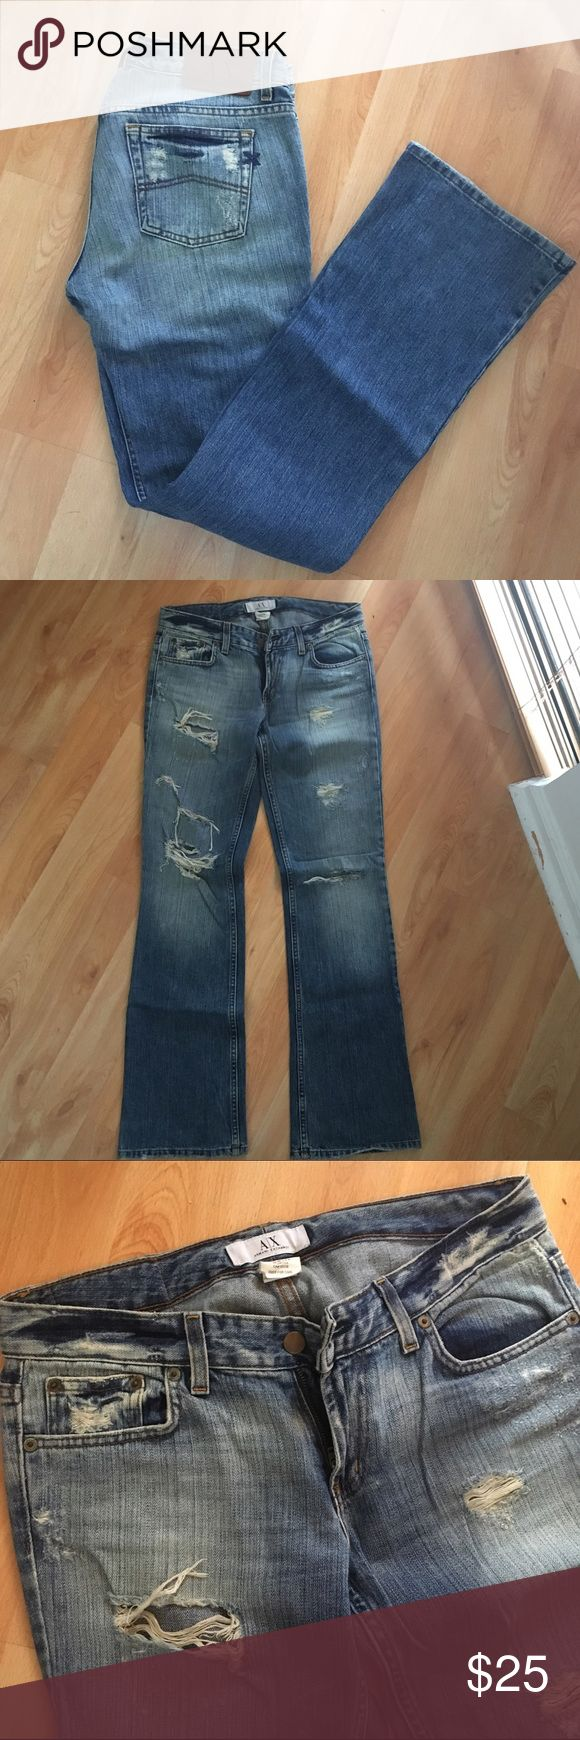 Armani Exchange Jeans Armani Exchange boot leg distressed jeans with front rips and fades. Size 6R Armani Exchange Jeans Boot Cut